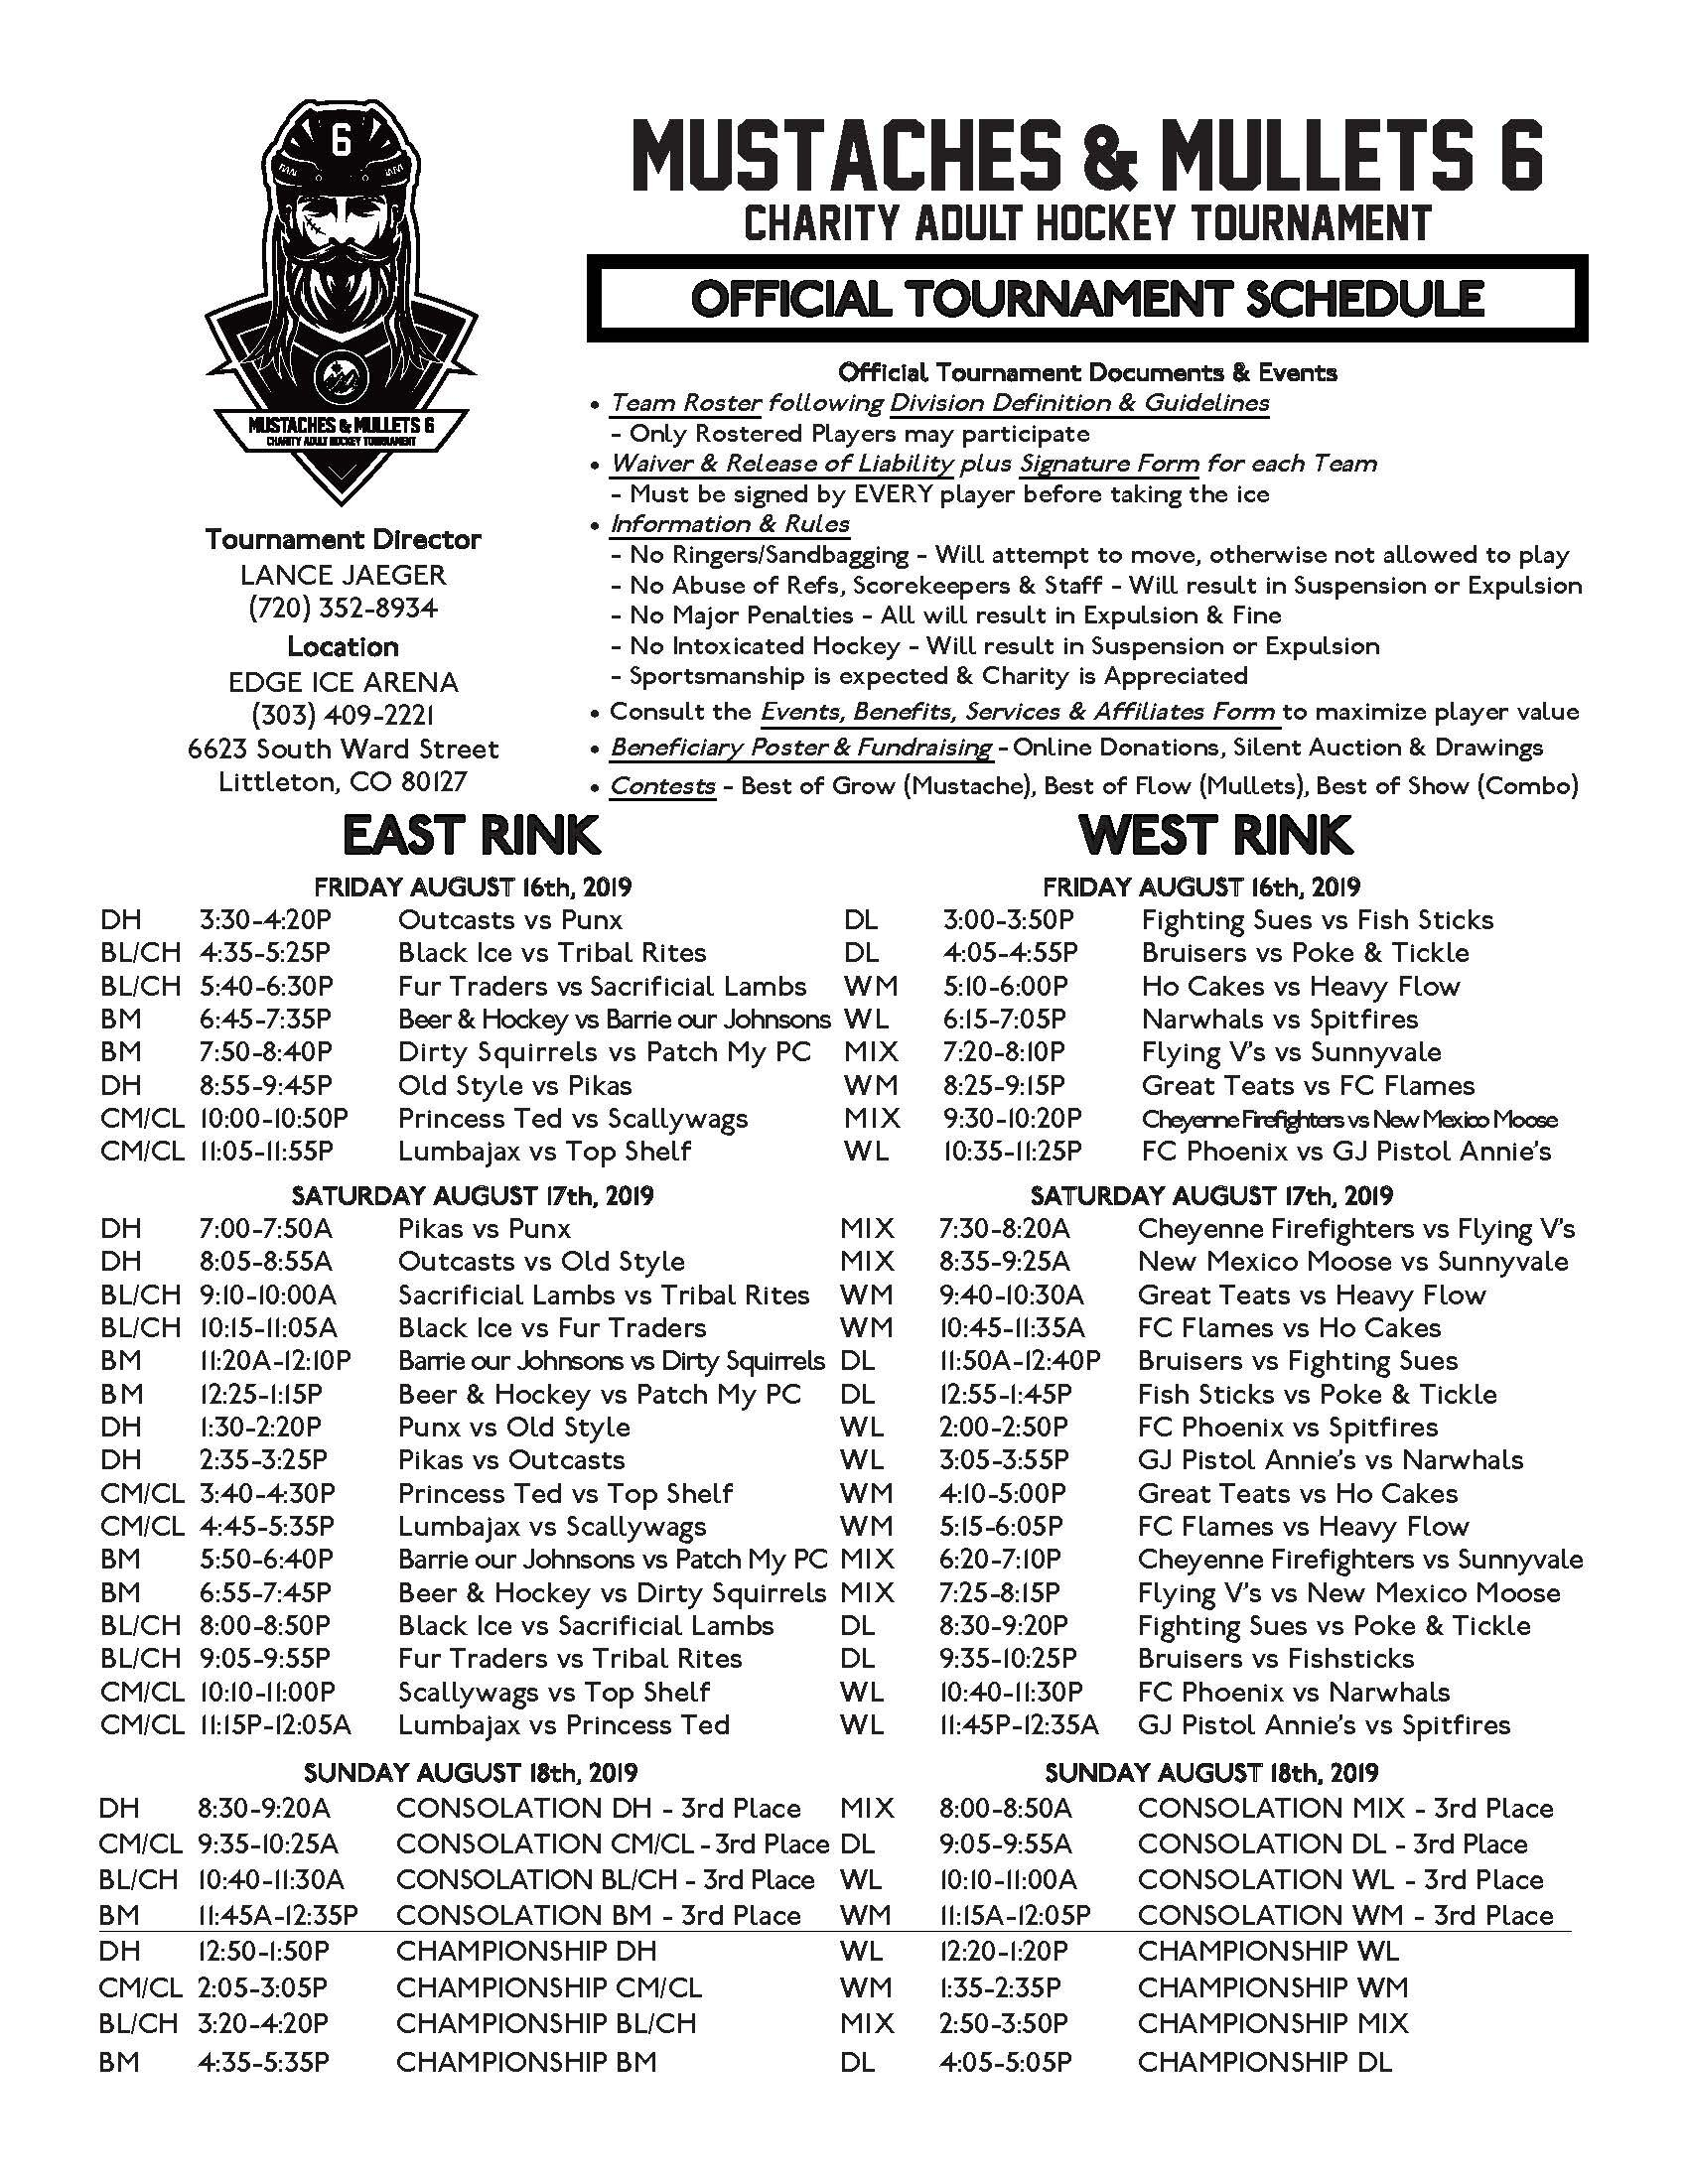 Mustaches & Mullets 6 Schedule